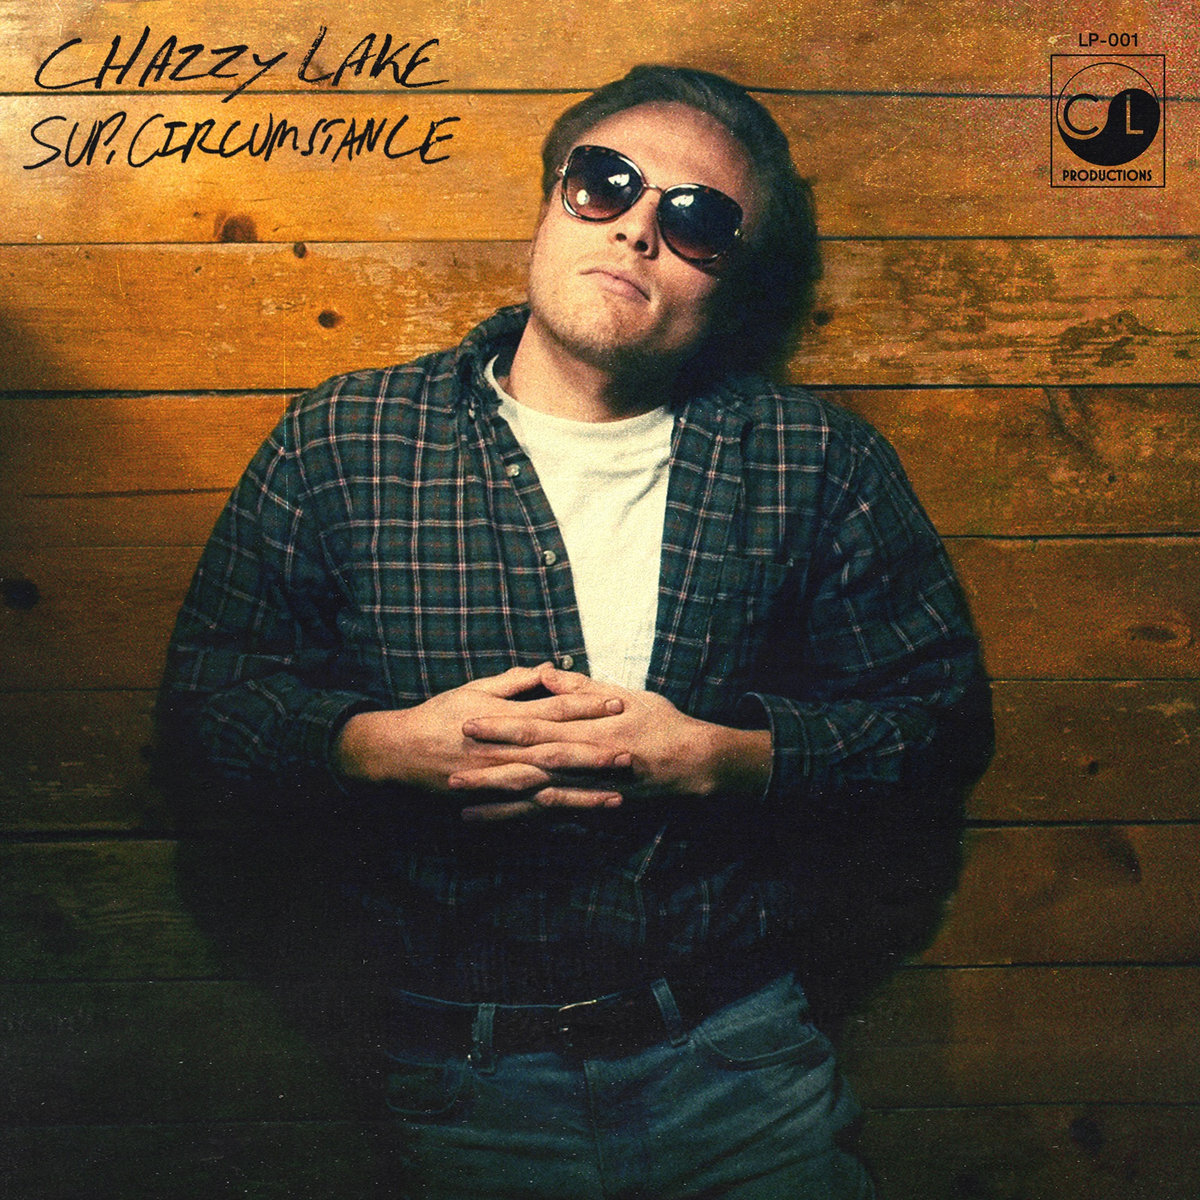 Chazzy Lake – Glasses